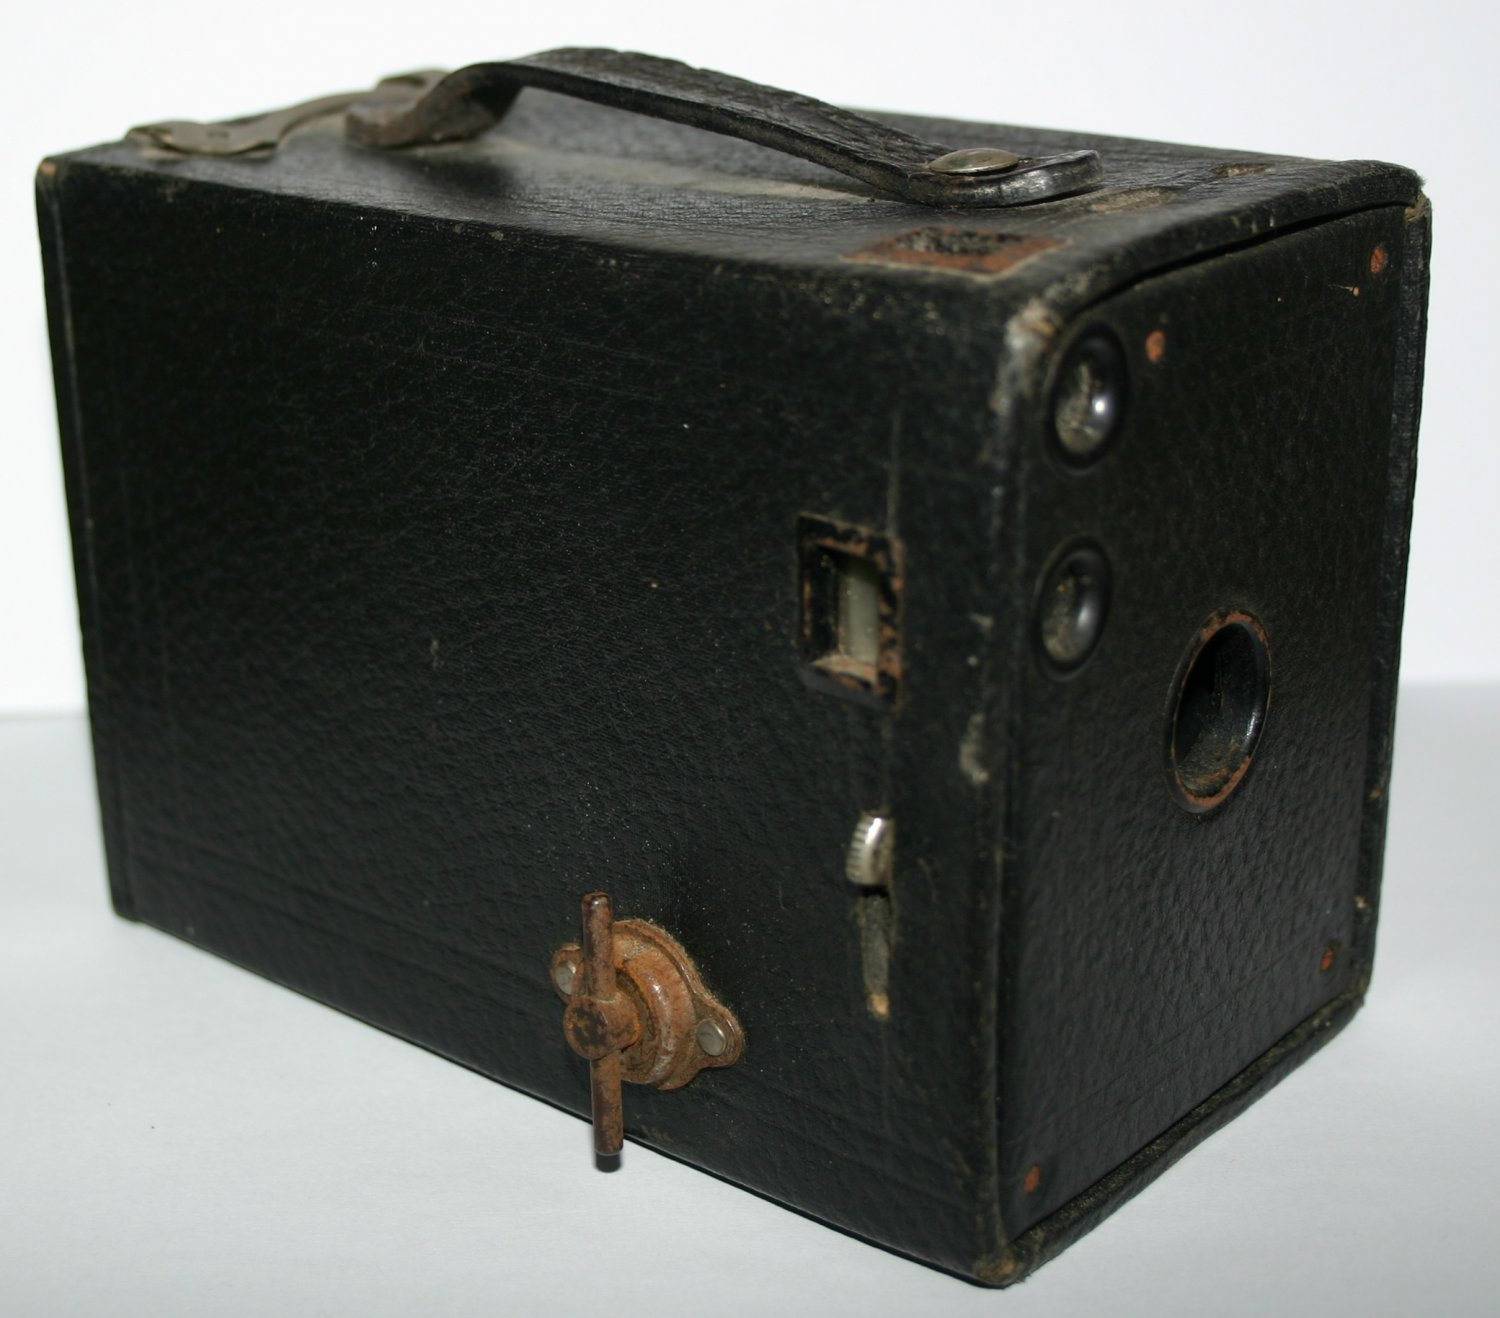 Kodak Eastman Box Camera No.2 Brownie